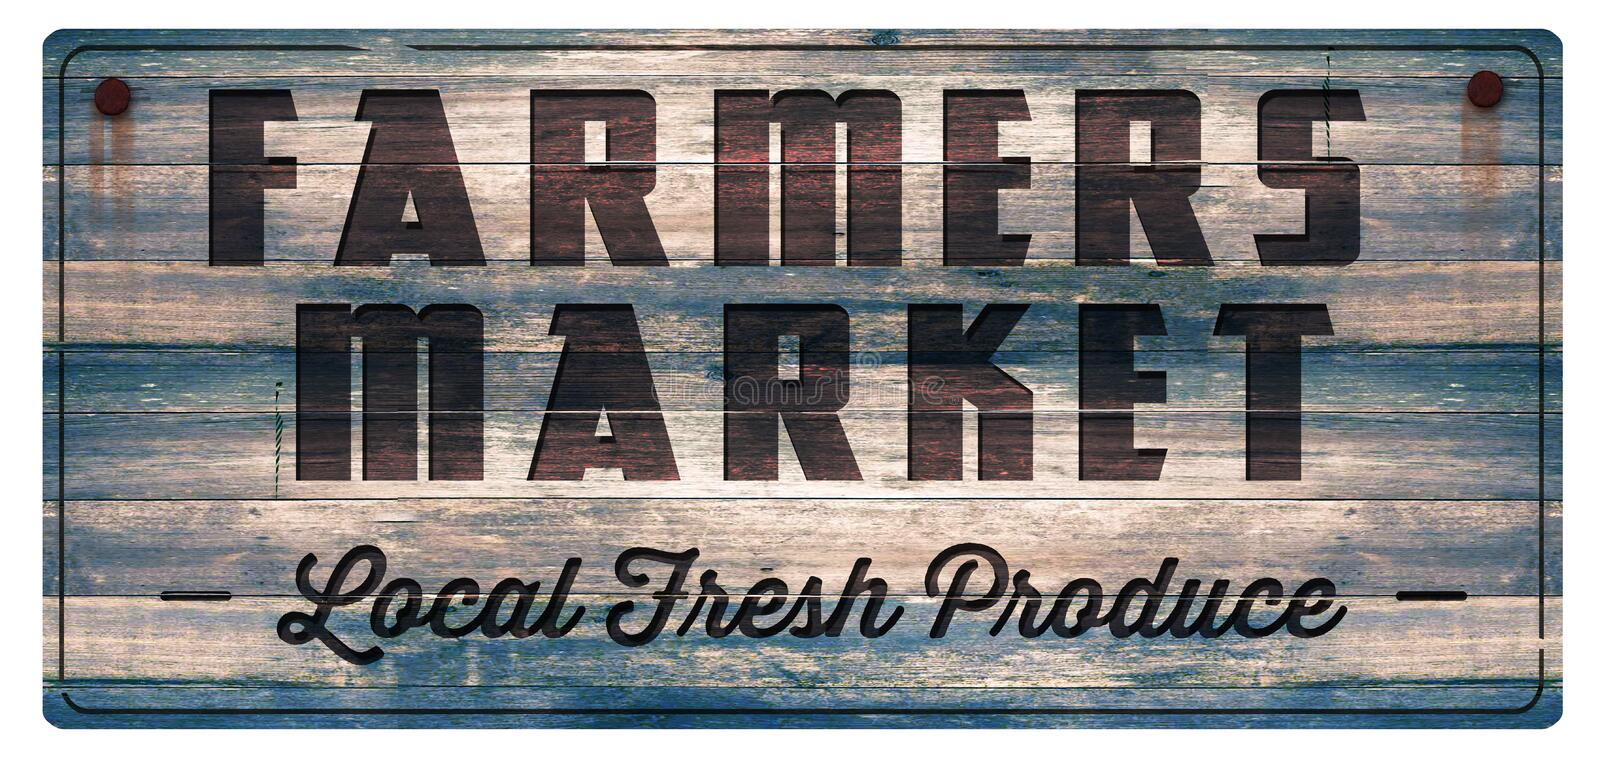 Farmers market fresh produce sign. Farmers Market Fresh Produce Wood Sign Vintage Antique Rustic Carved Food Local stock illustration